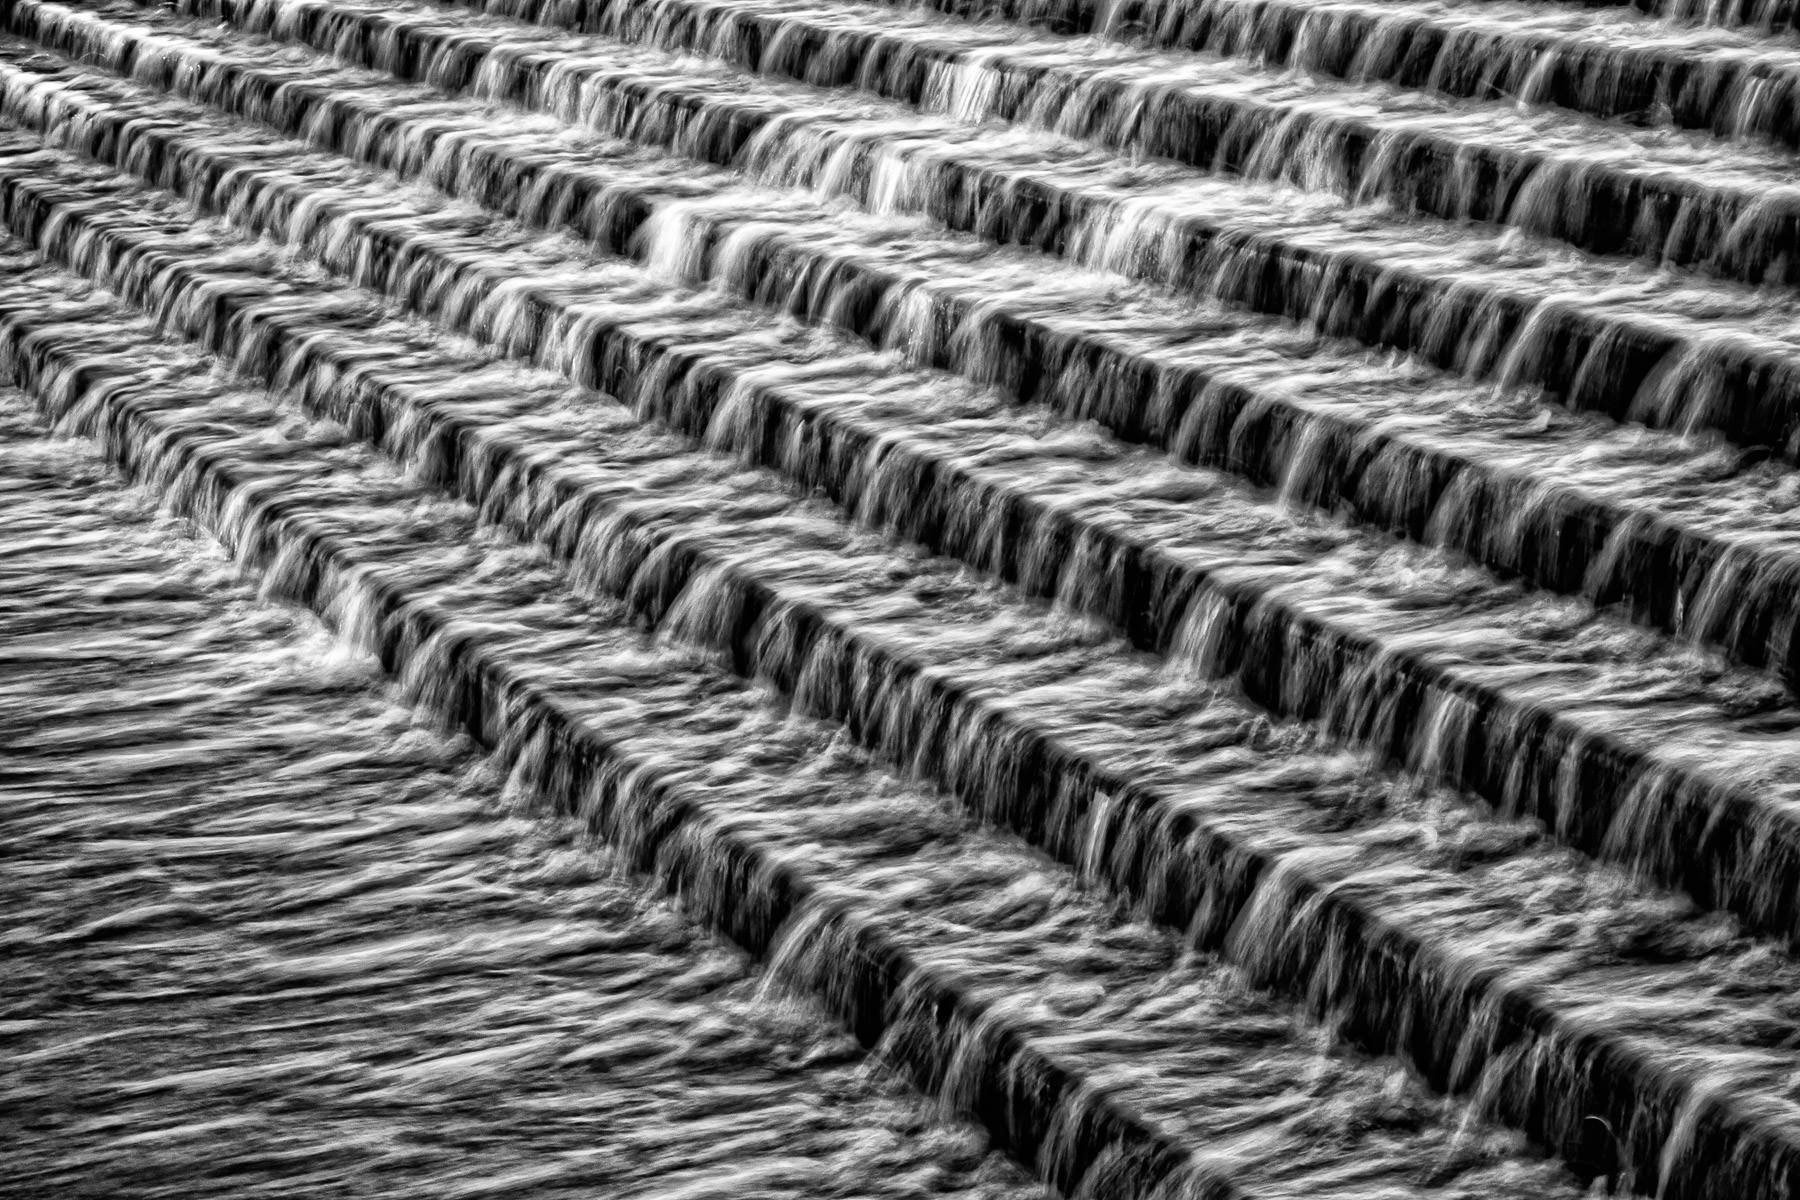 Water flows down a stairs-like fountain on the campus of Tarrant County College's Trinity River East Campus, Fort Worth, Texas.